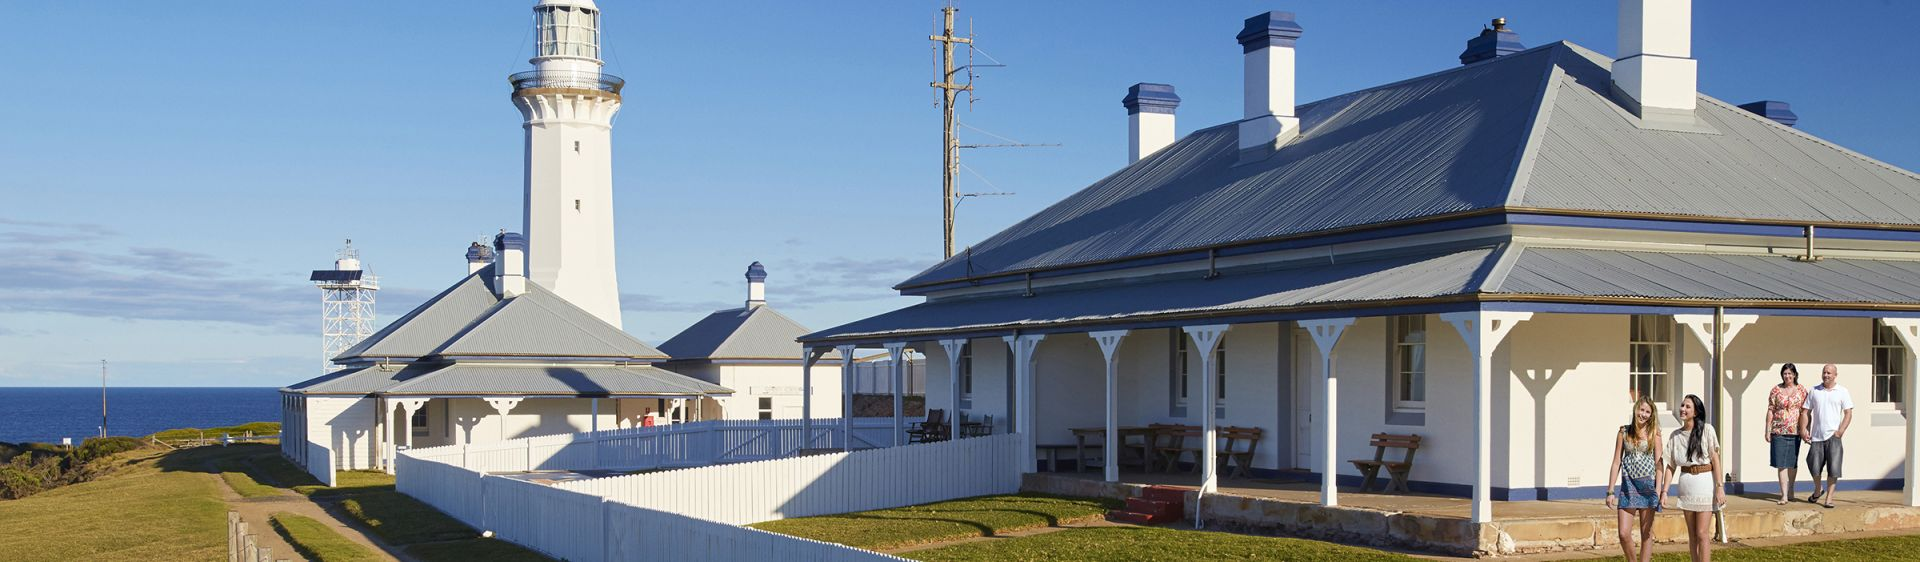 NSW Cabins and Cottages Accommodation | NSW Holidays